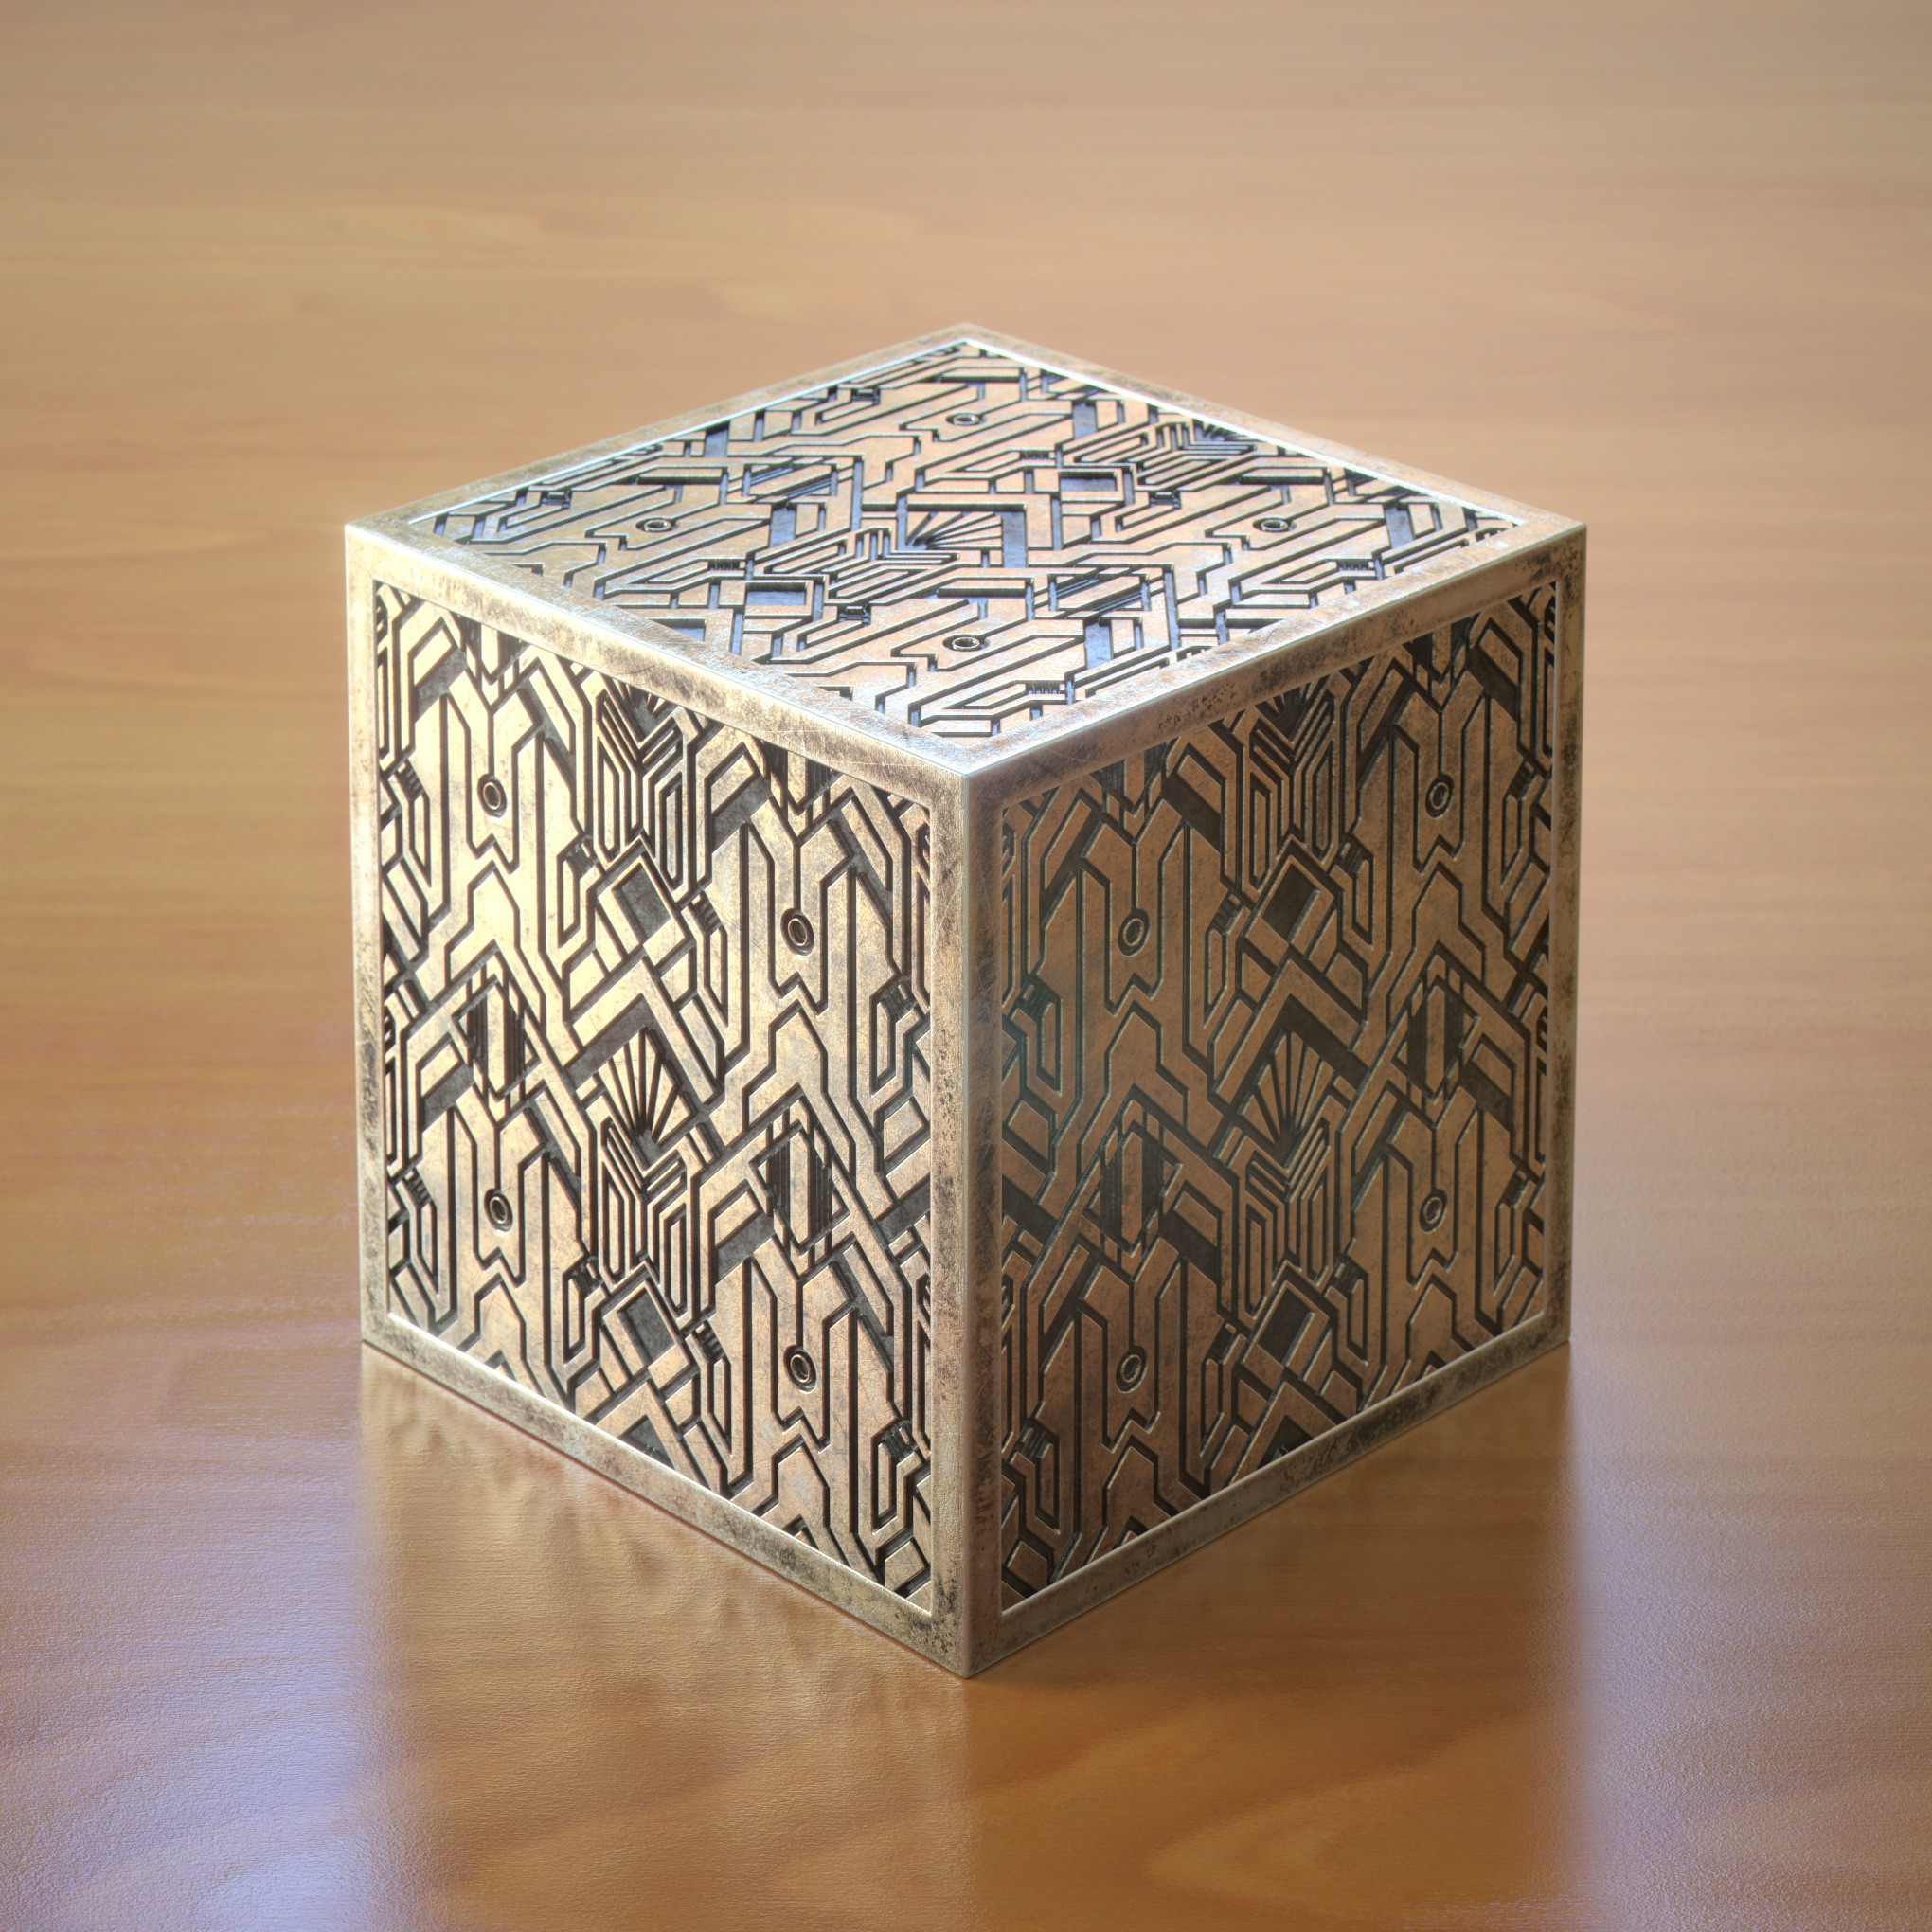 We need a 3D design for our decorative brass jewelry cube